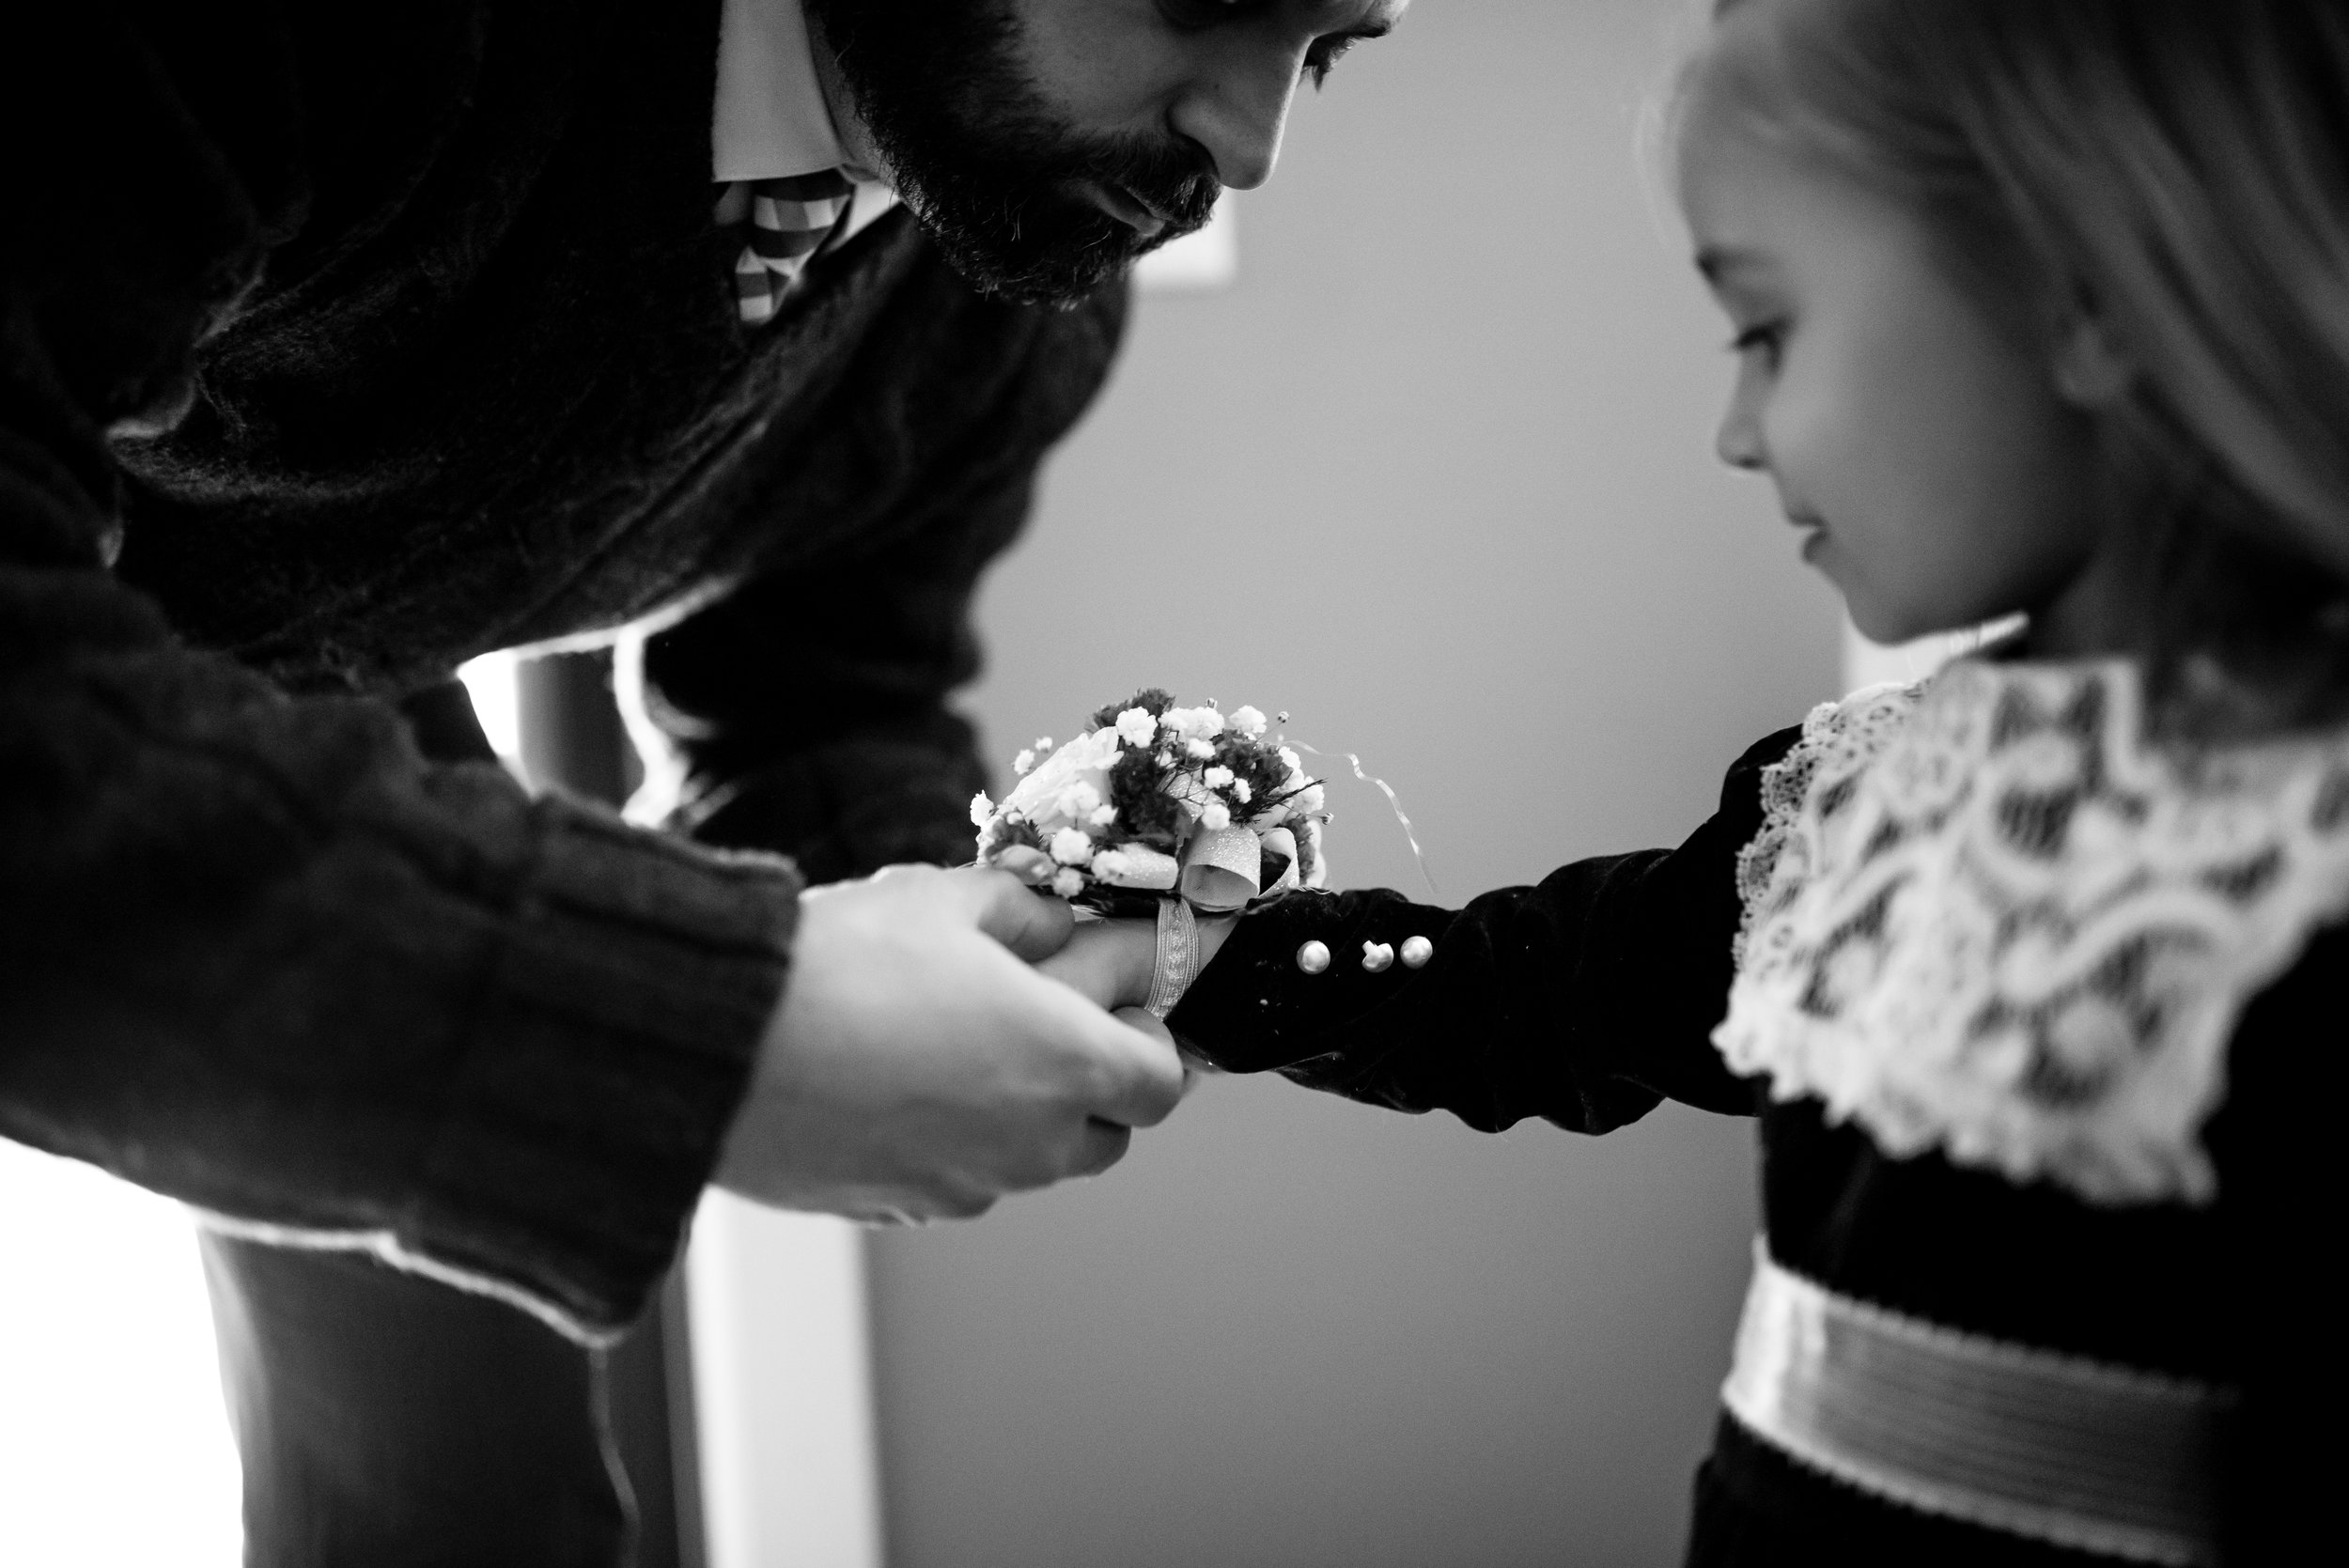 Daughter smiles at corsage as Dad puts it on her wrist